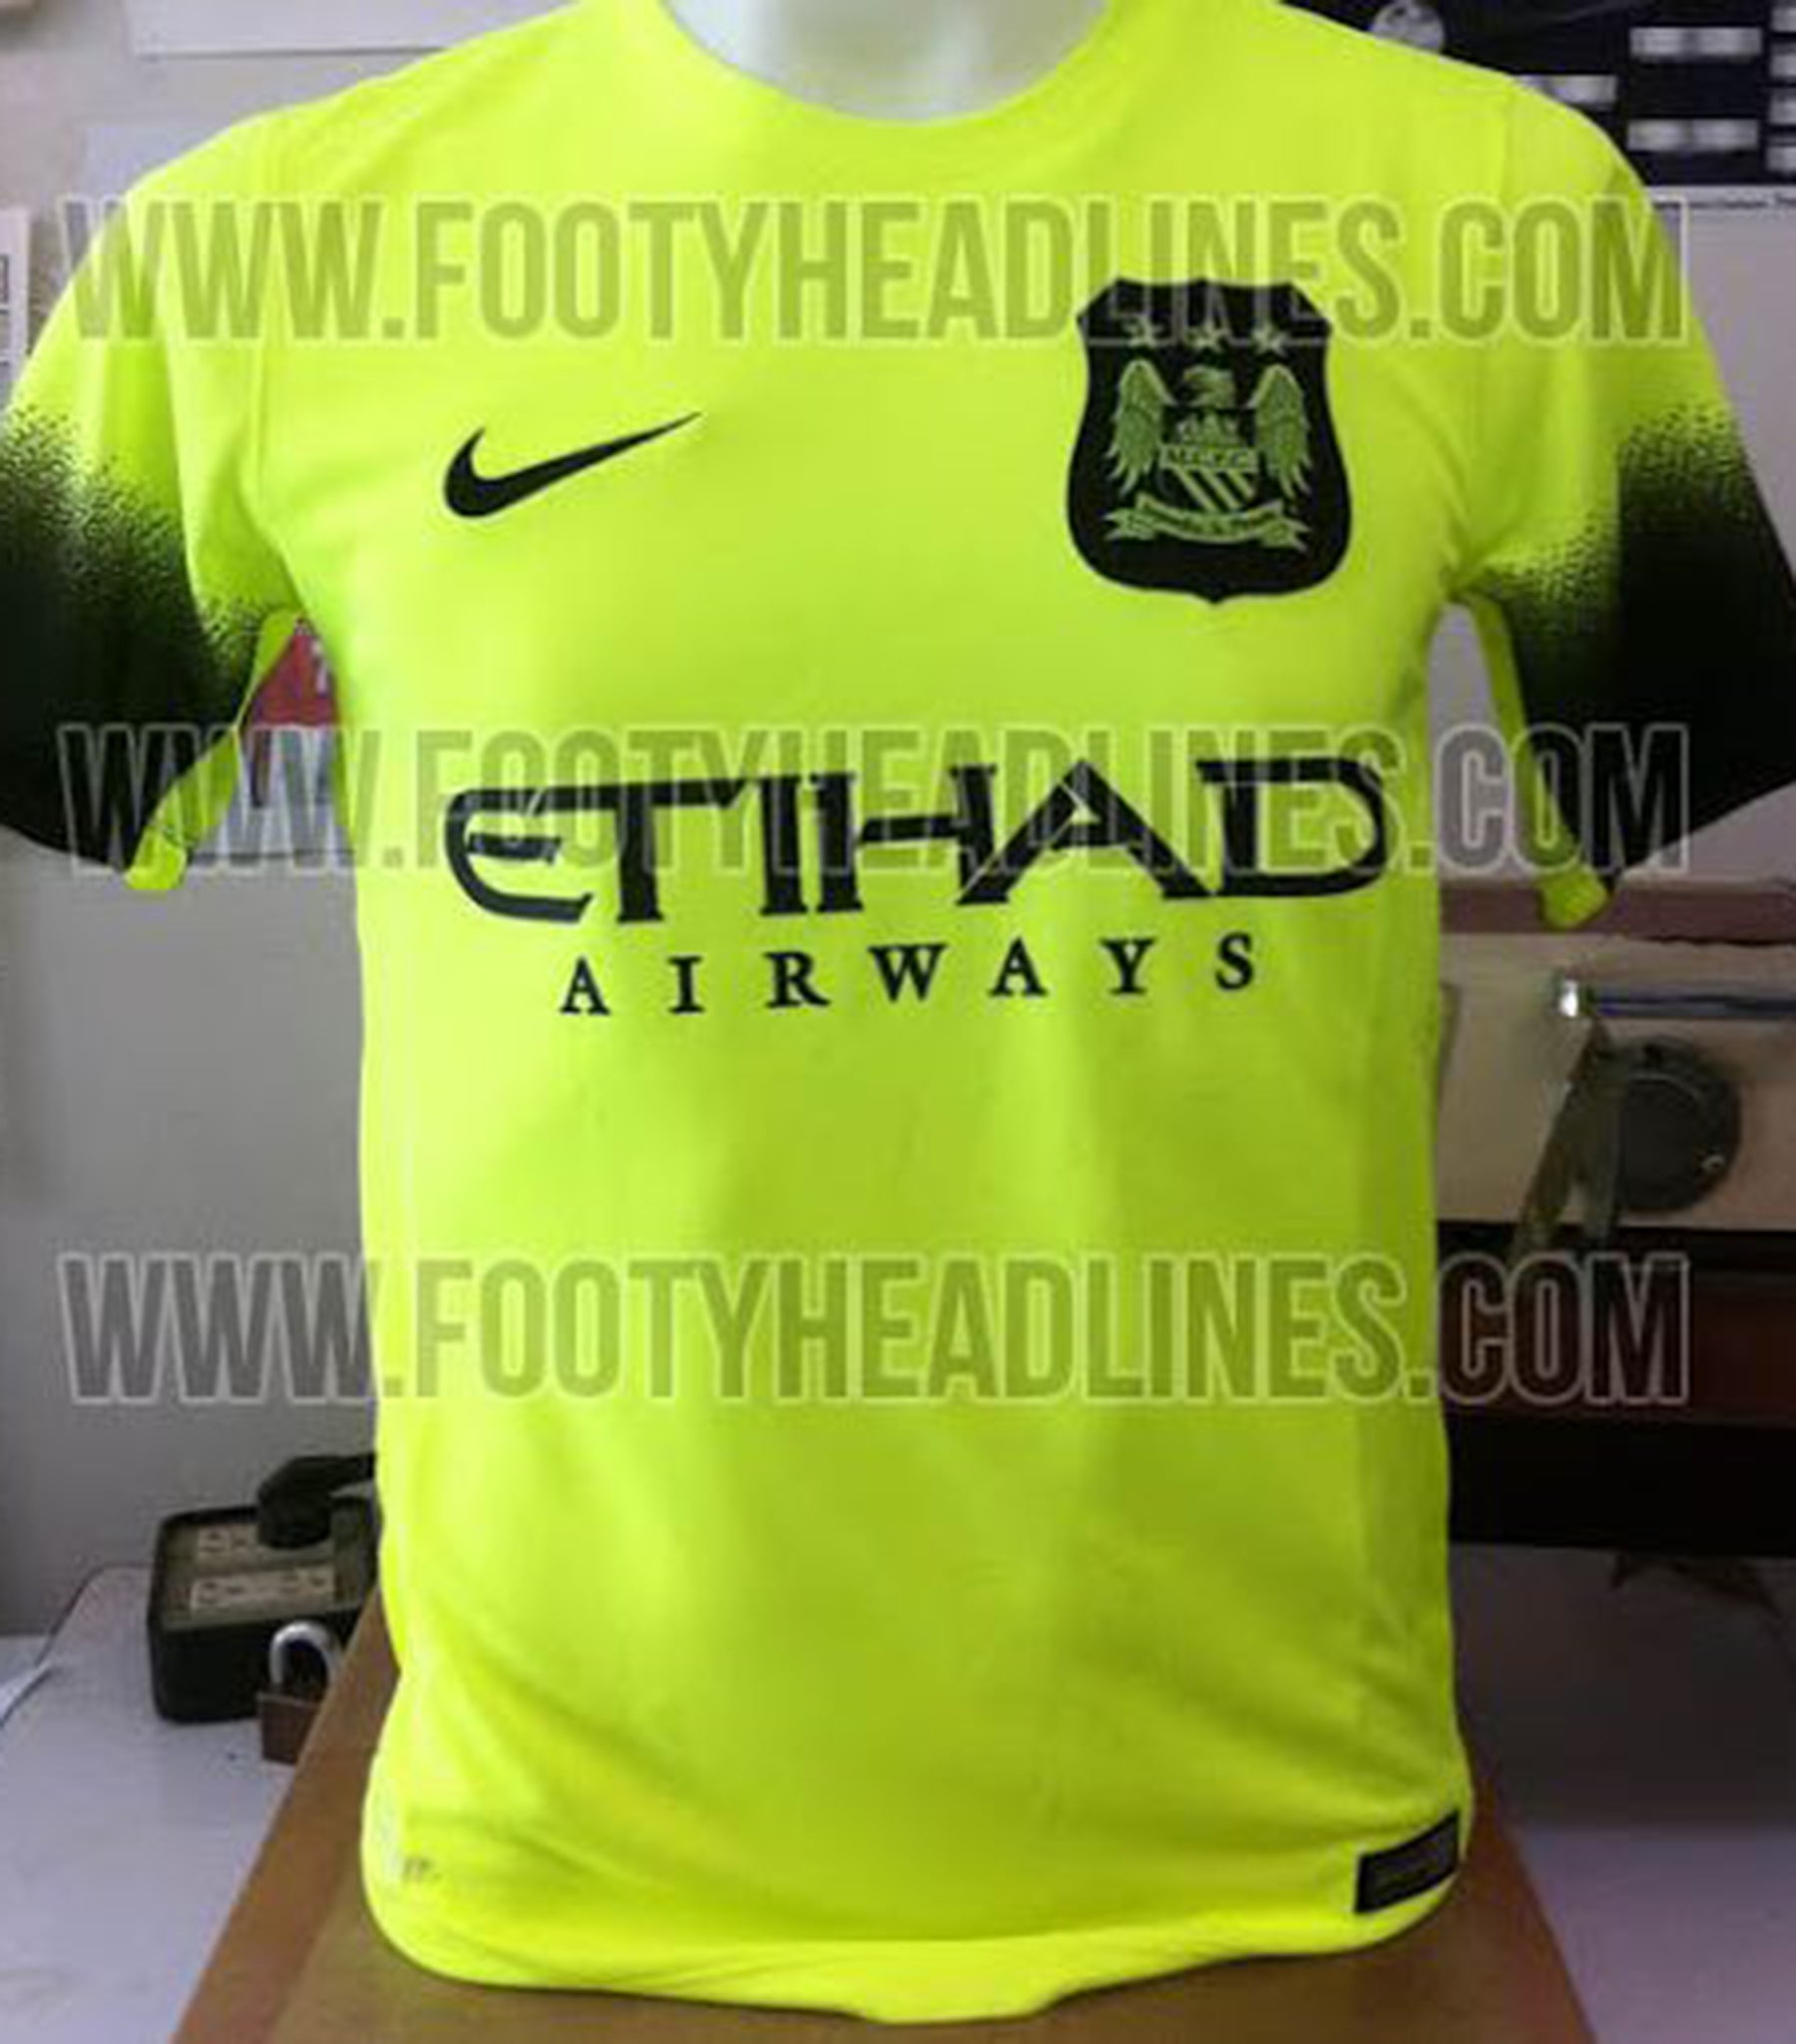 new products 527e2 a18d0 Manchester City 2015/16 third kit leaked: Neon monstrosity ...